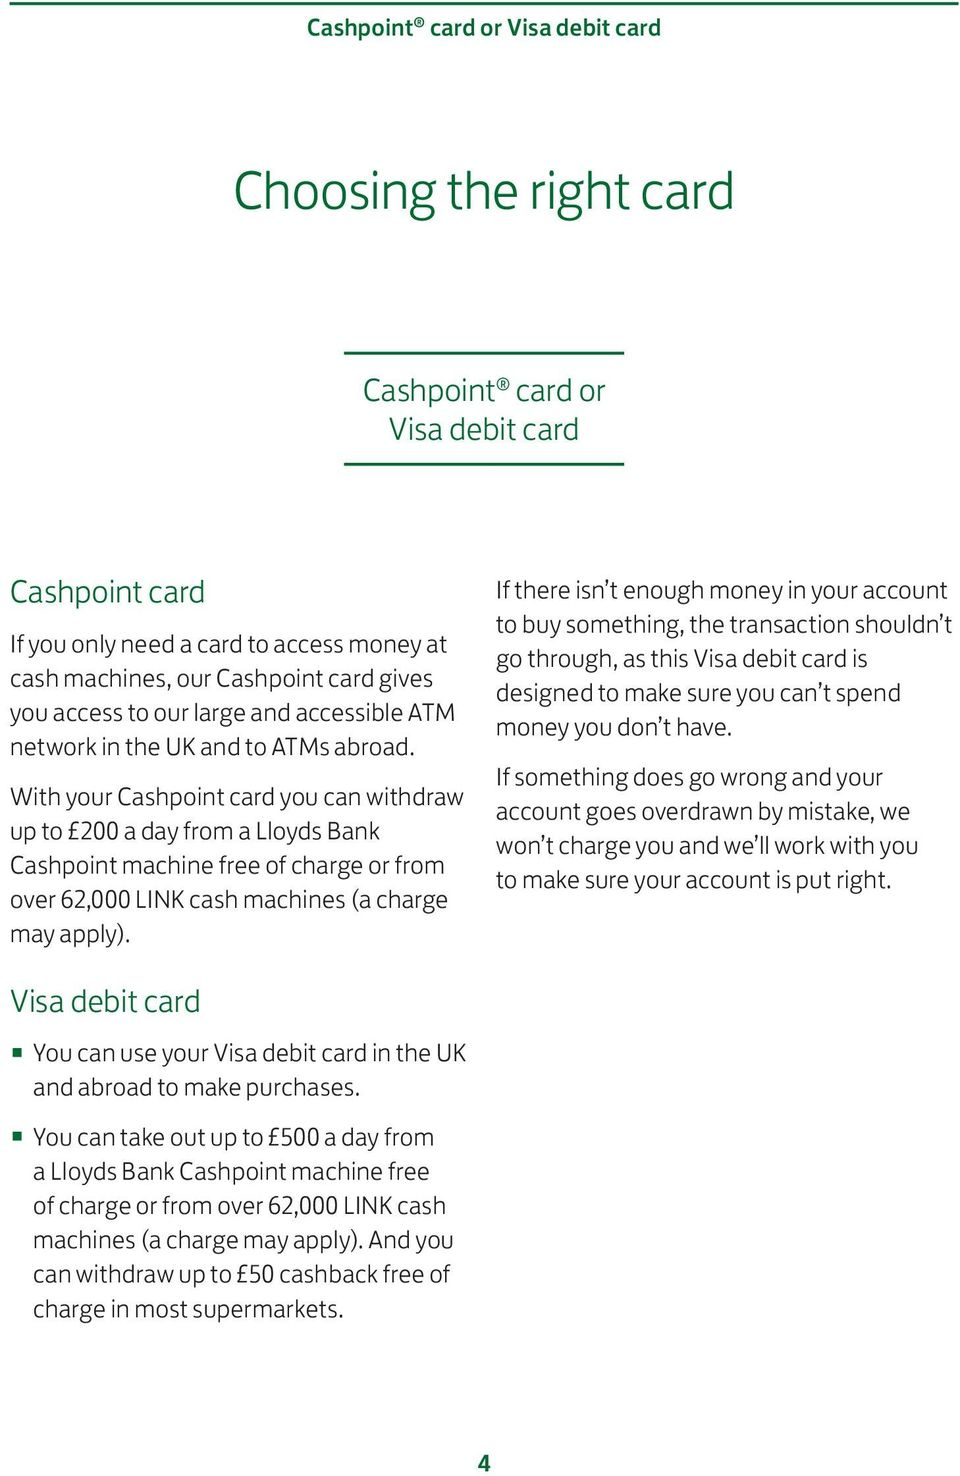 With your Cashpoint card you can withdraw up to 200 a day from a Lloyds Bank Cashpoint machine free of charge or from over 62,000 LINK cash machines (a charge may apply).